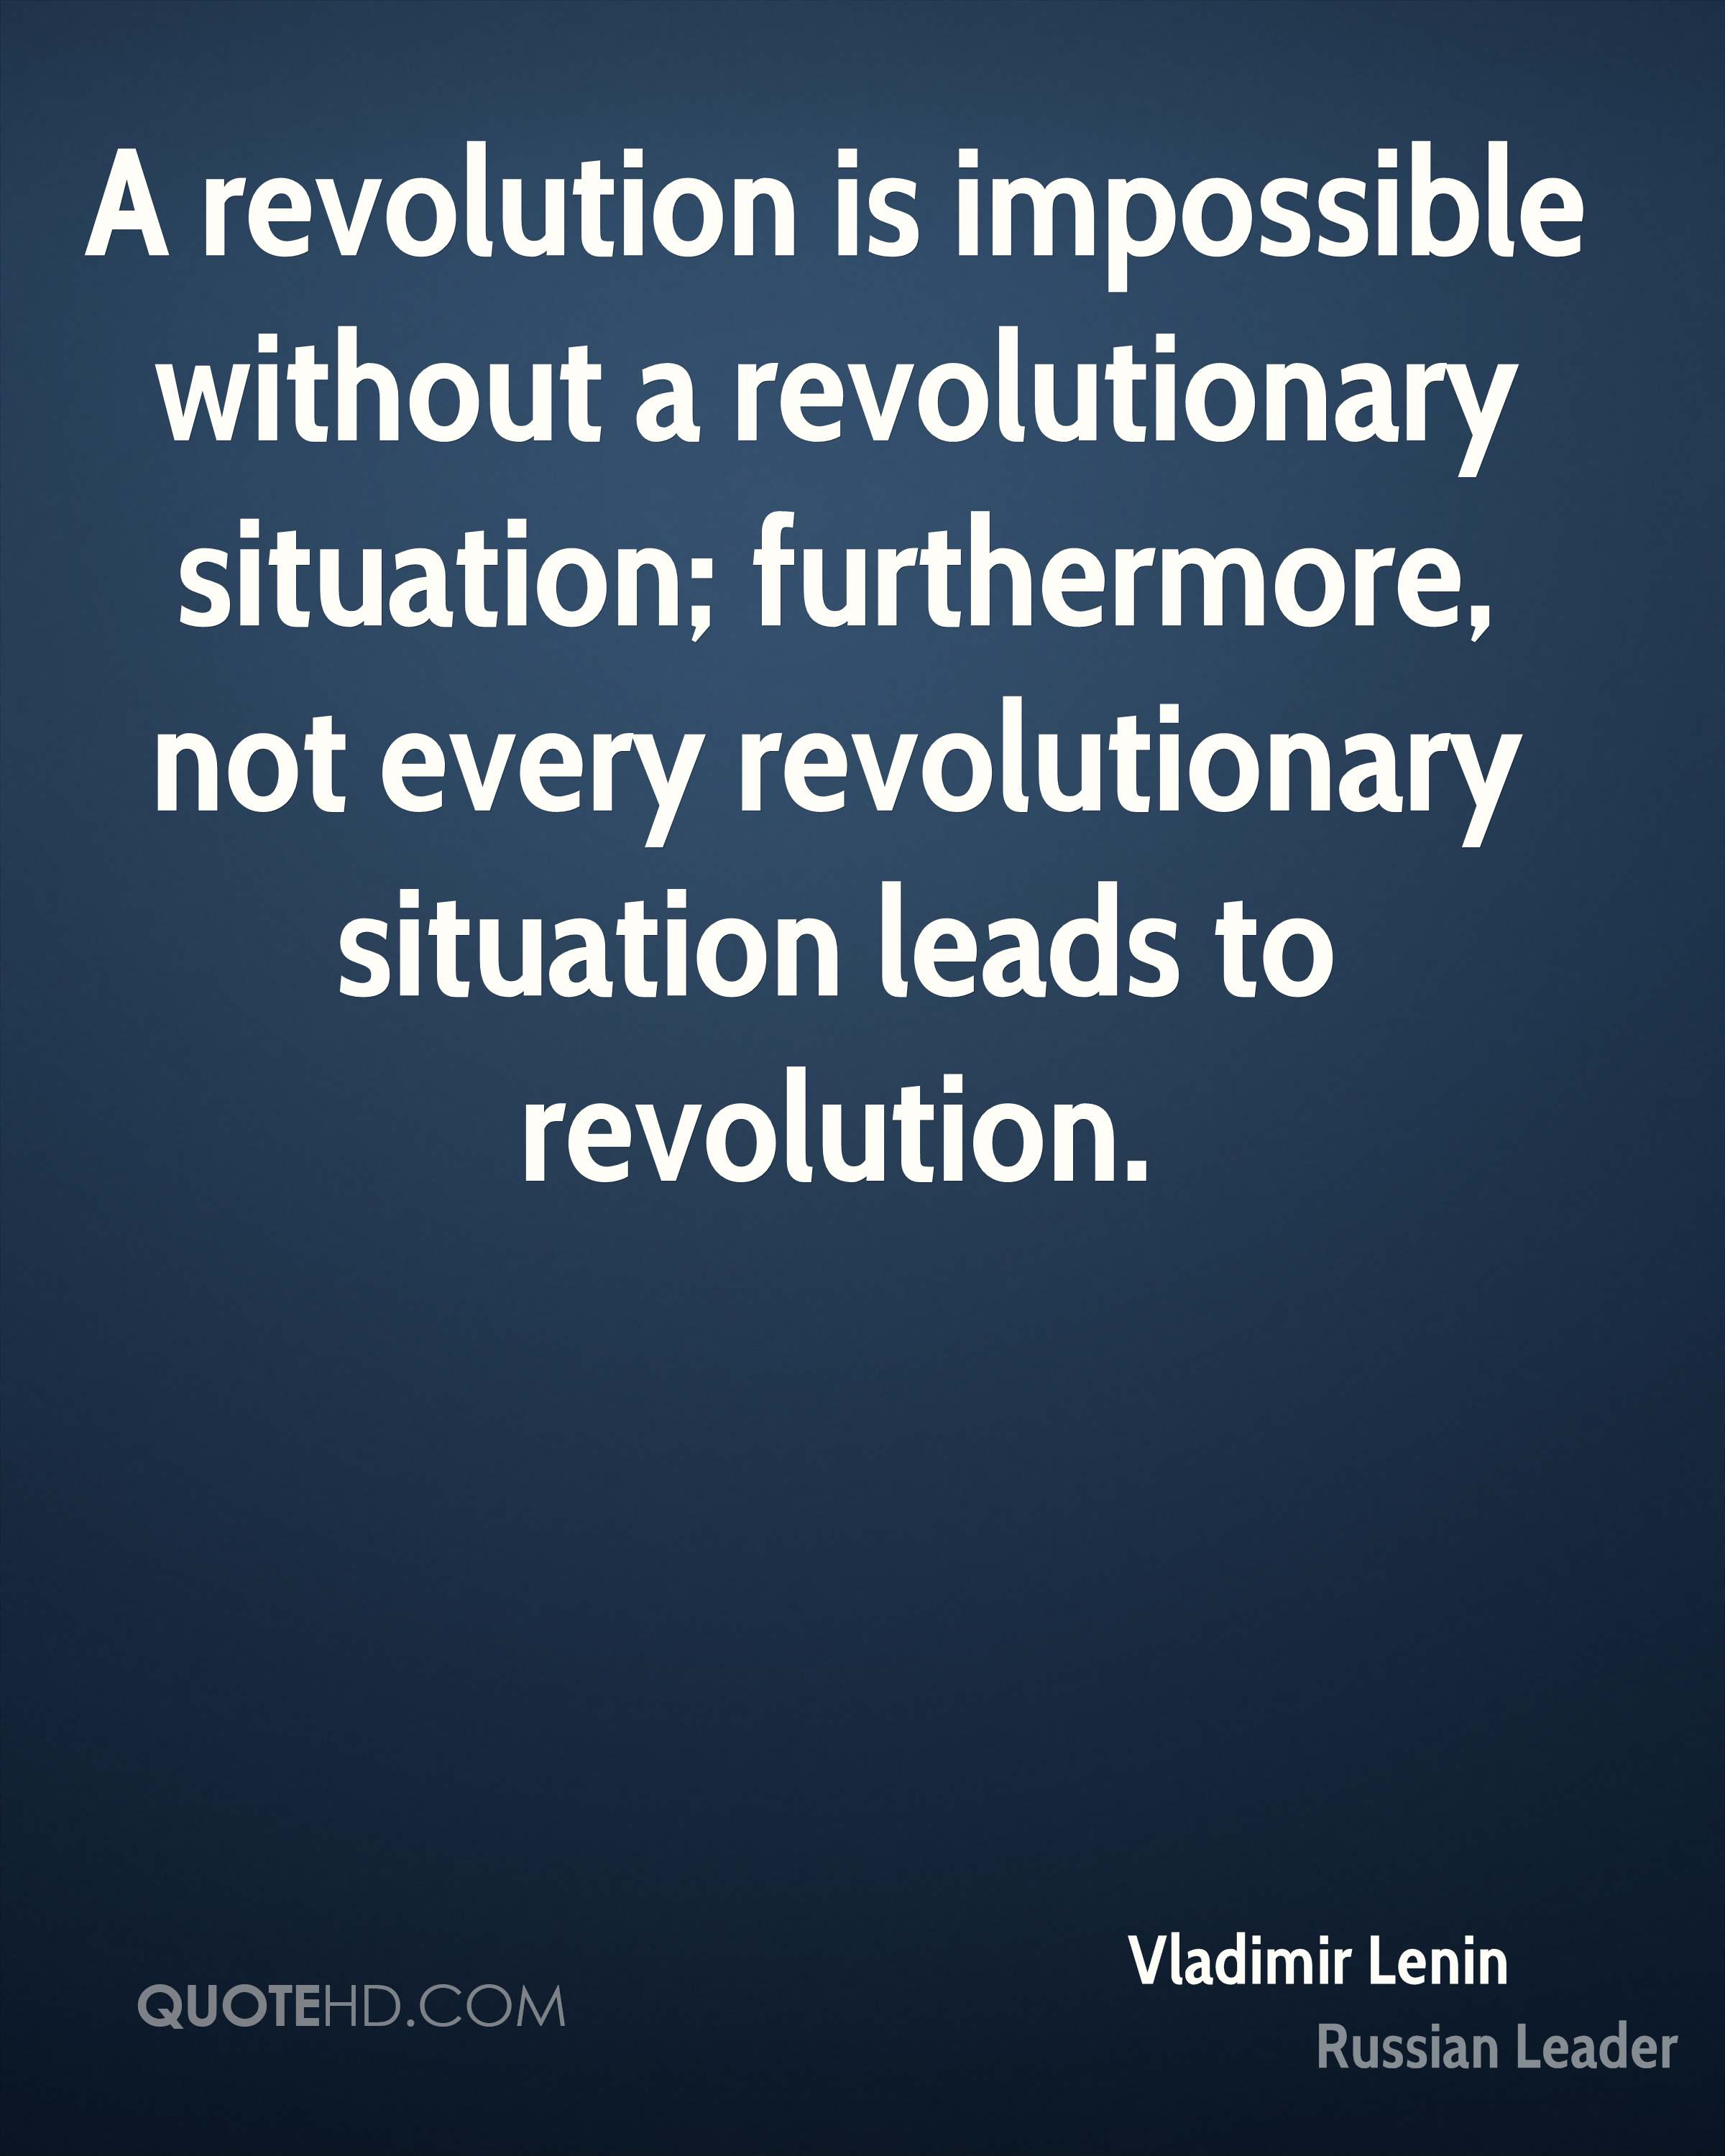 A revolution is impossible without a revolutionary situation; furthermore, not every revolutionary situation leads to revolution.